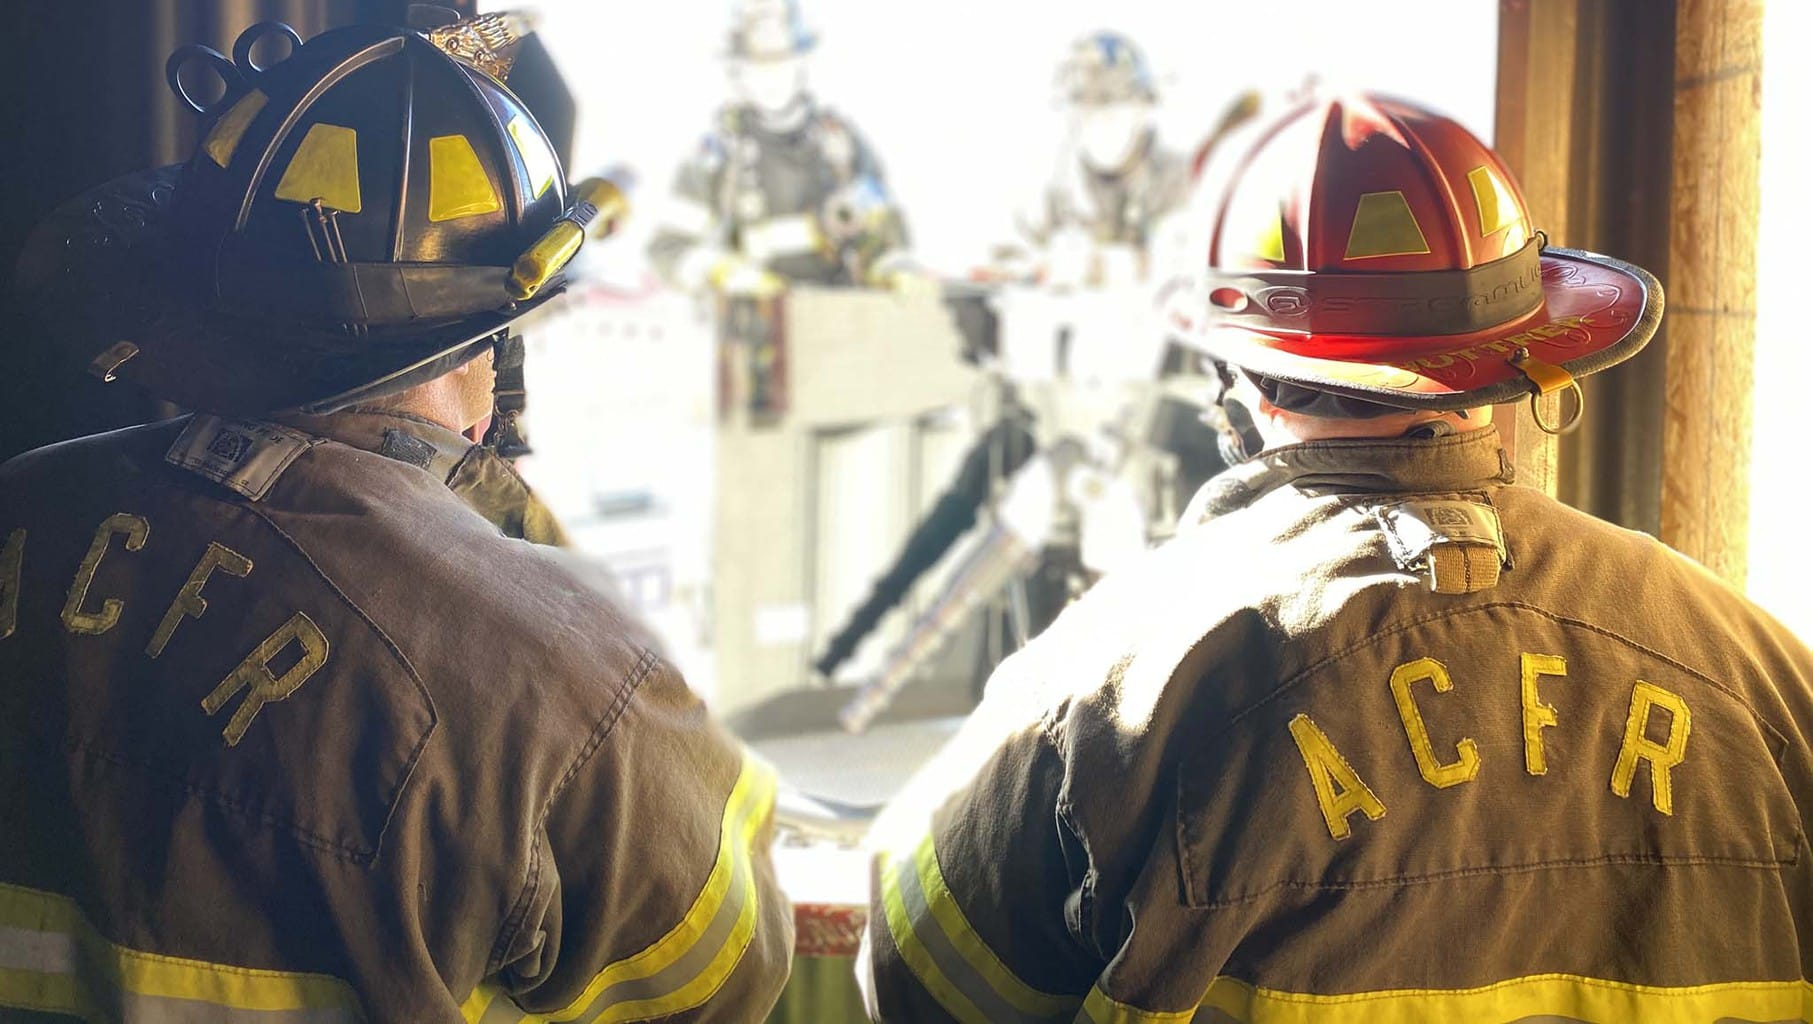 Two ACFR firefighters look on during a training exercise